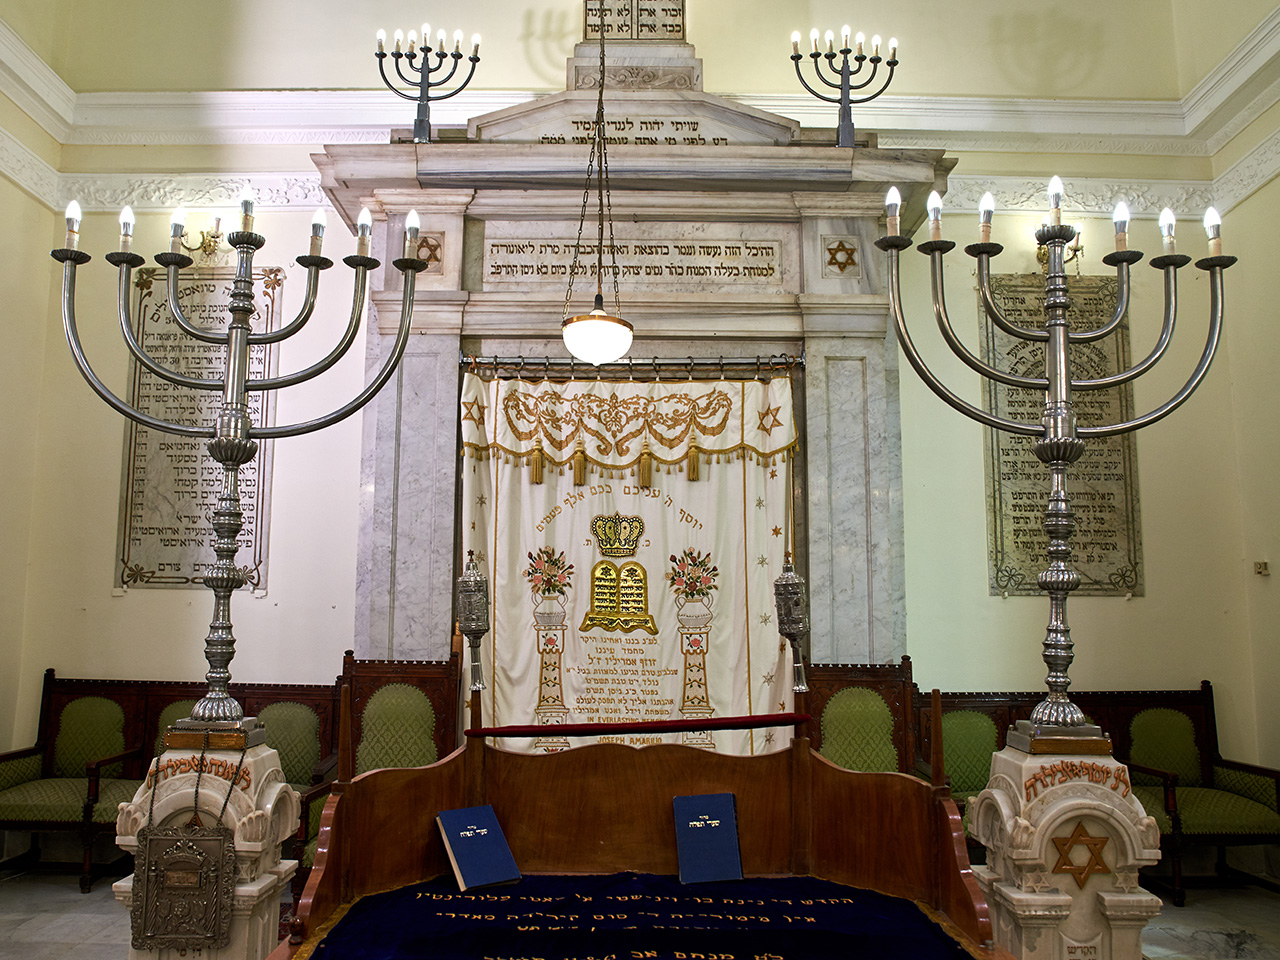 Thessaloniki Monastirioton Synagogue - Thessaloniki Jewish Tour - Jewish tour of Thessaloniki Greece - Greek Jewish tours in Greece - Jewish Greek travel packages in Greece - Atlantis Travel Agency in Greece